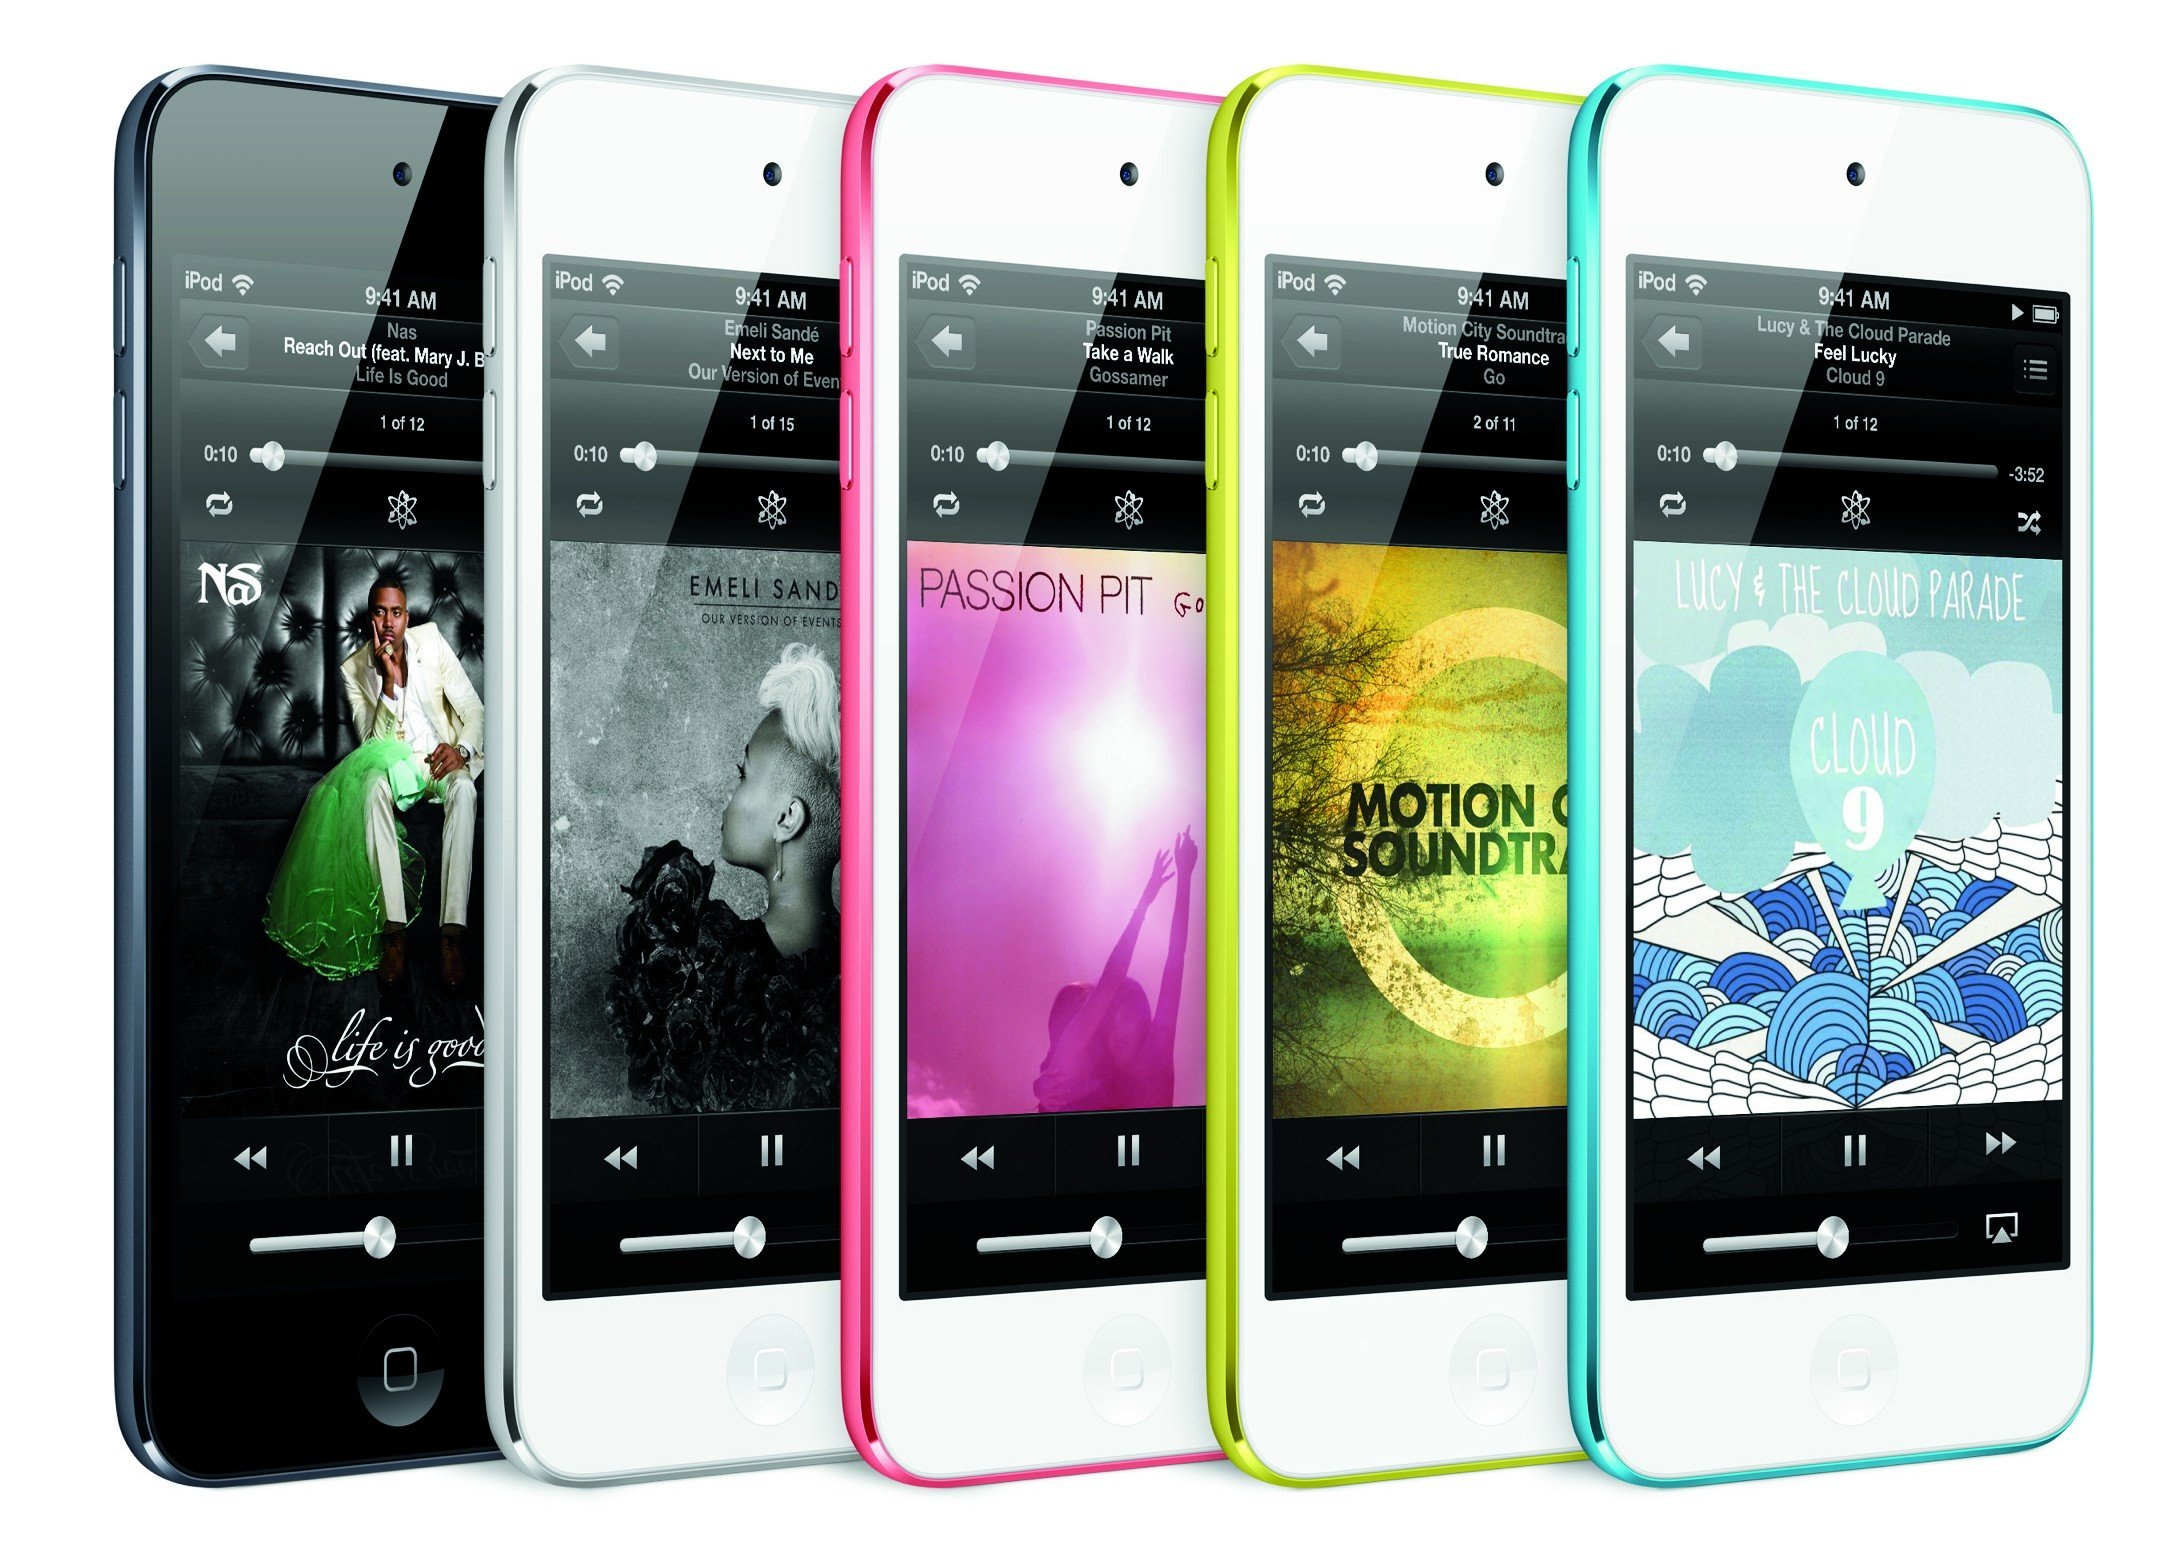 The iPod is 12 Years Old!